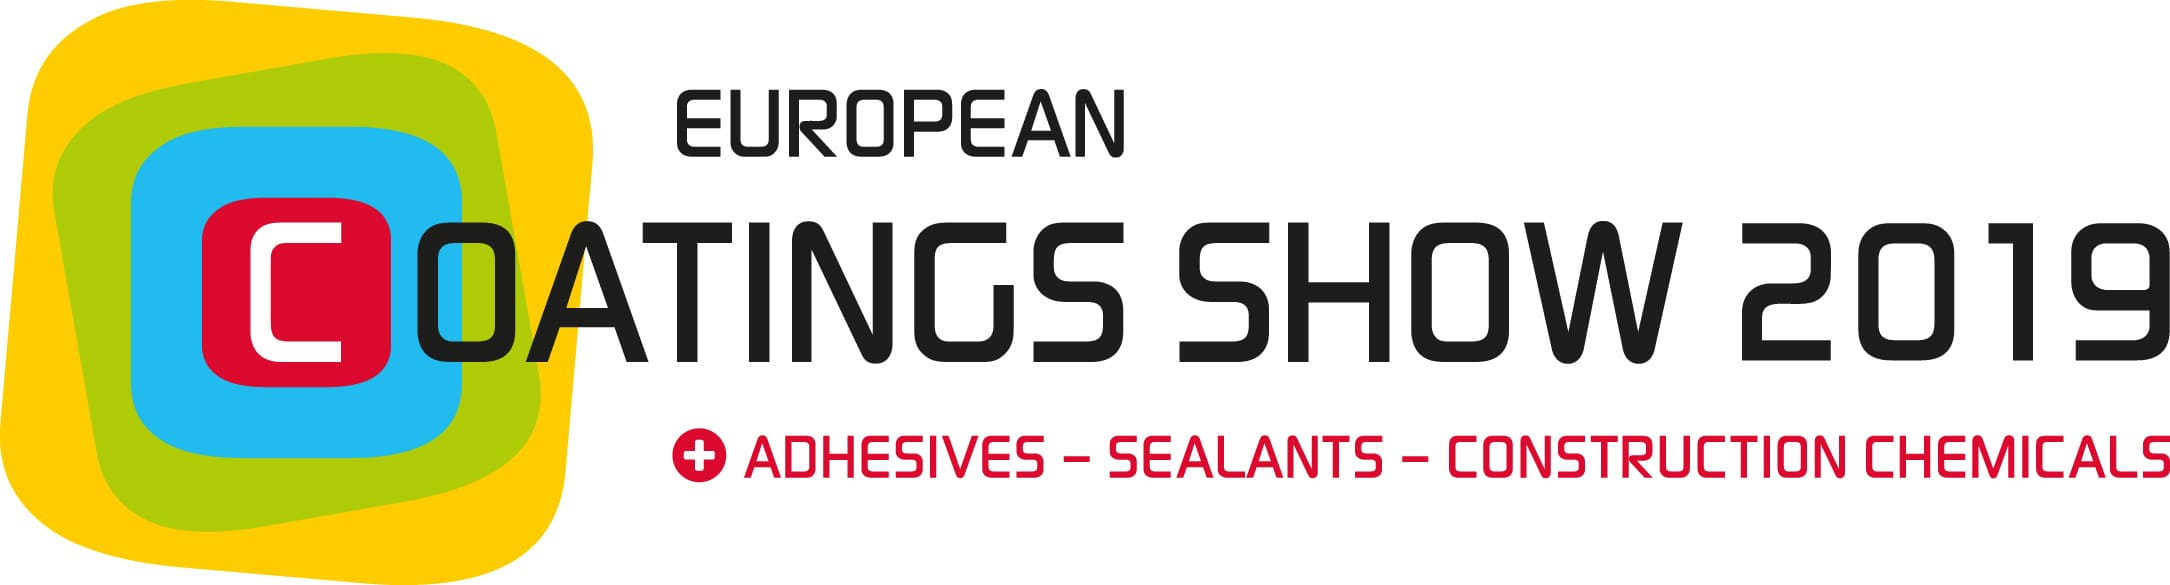 European Coatings Show 2019